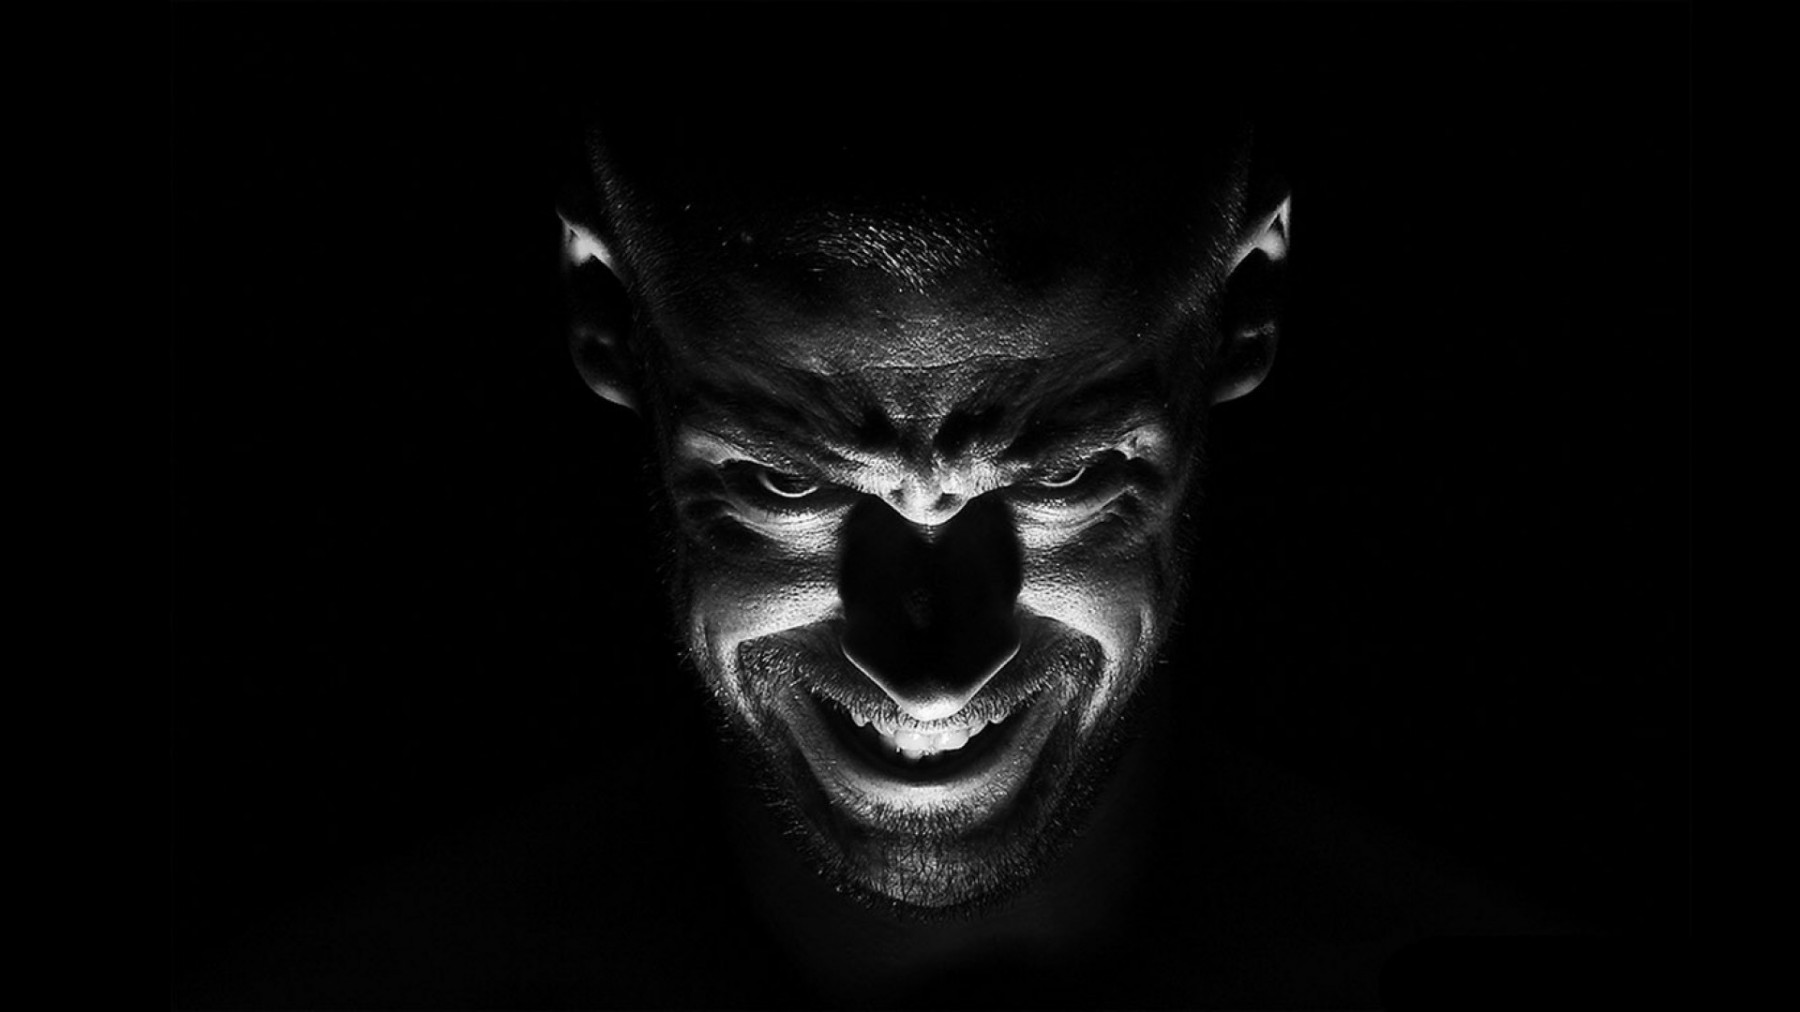 Black and White Demon Portrait – Photography Wallpapers